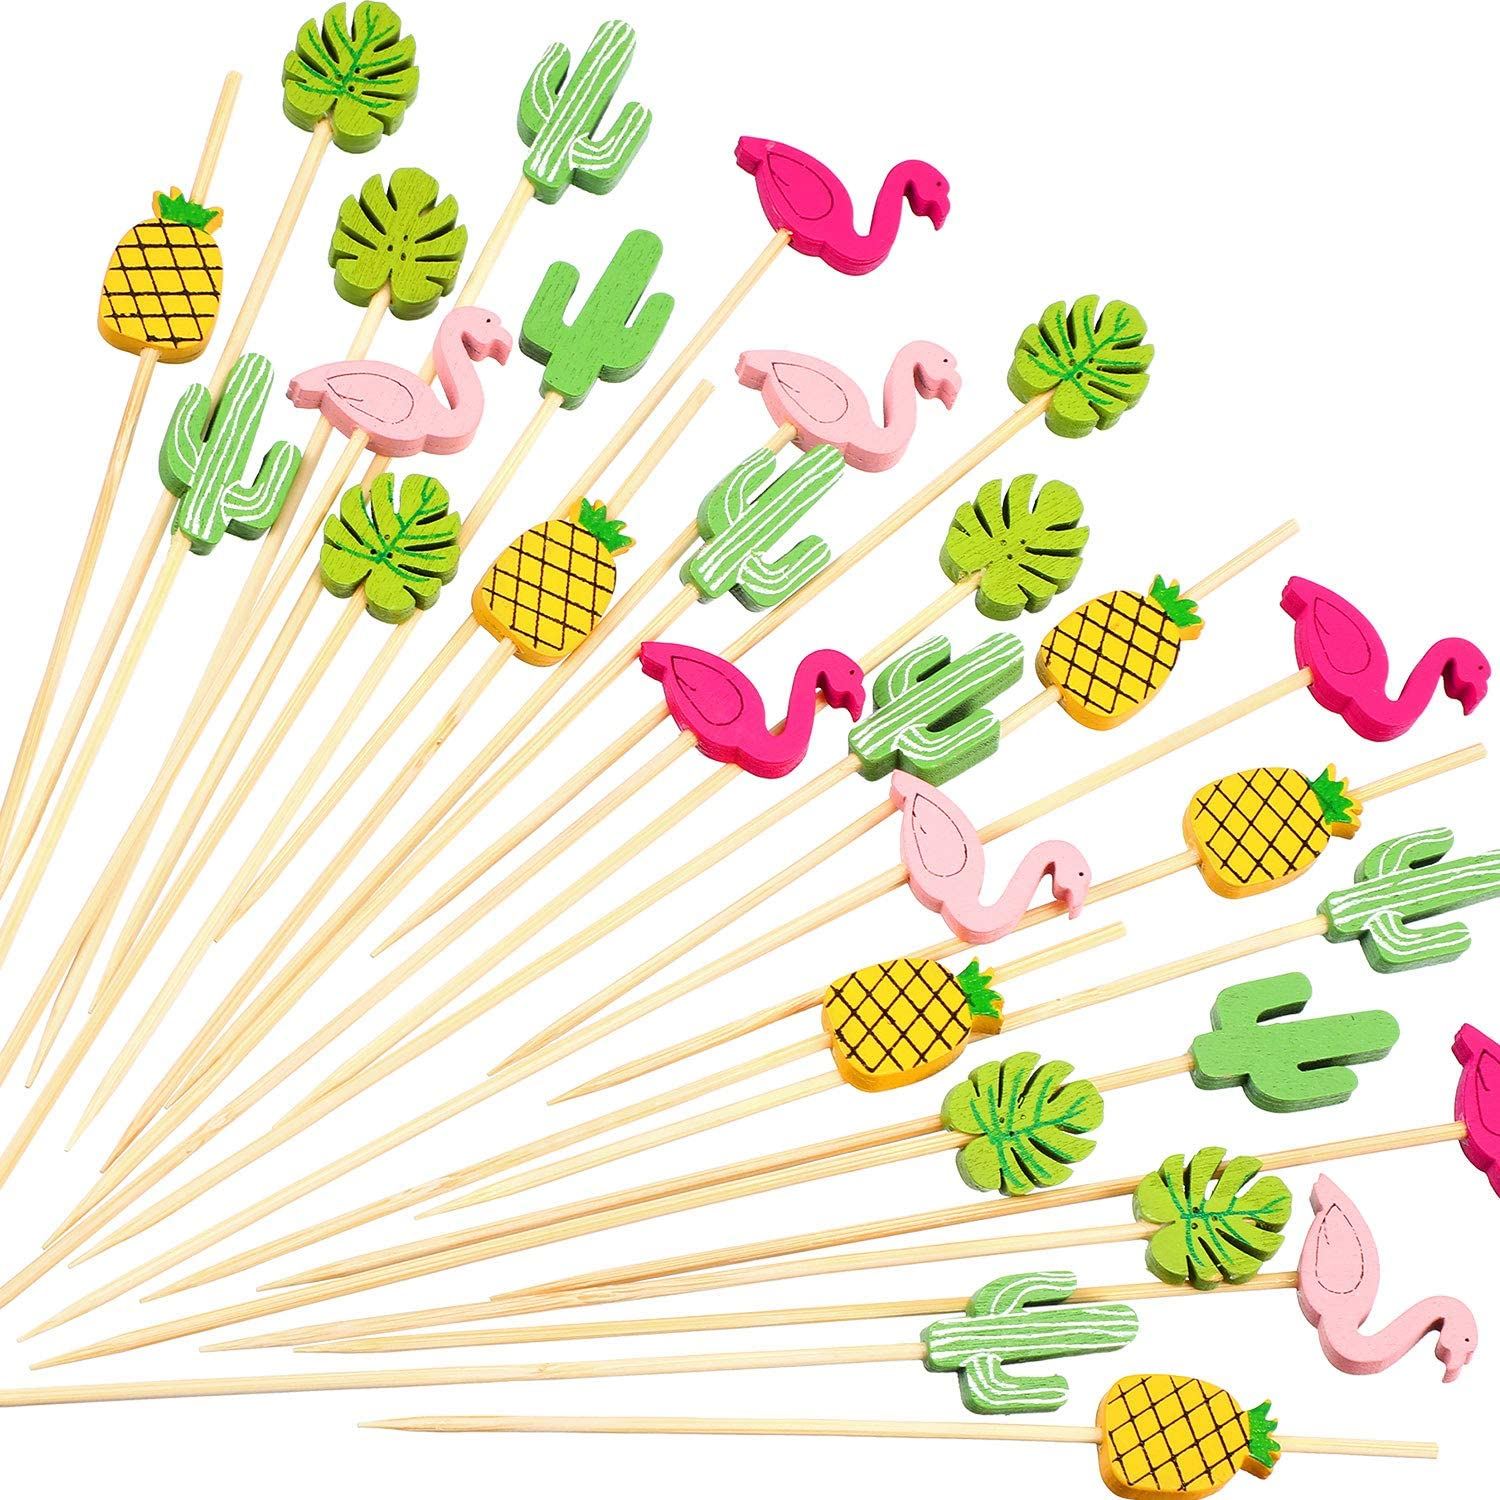 200 Pack Cocktail Picks 4.7 Inch Fruit Sticks Bamboo Toothpicks for Luau Hawaii Beach Party Supplies (Hawaii Set)